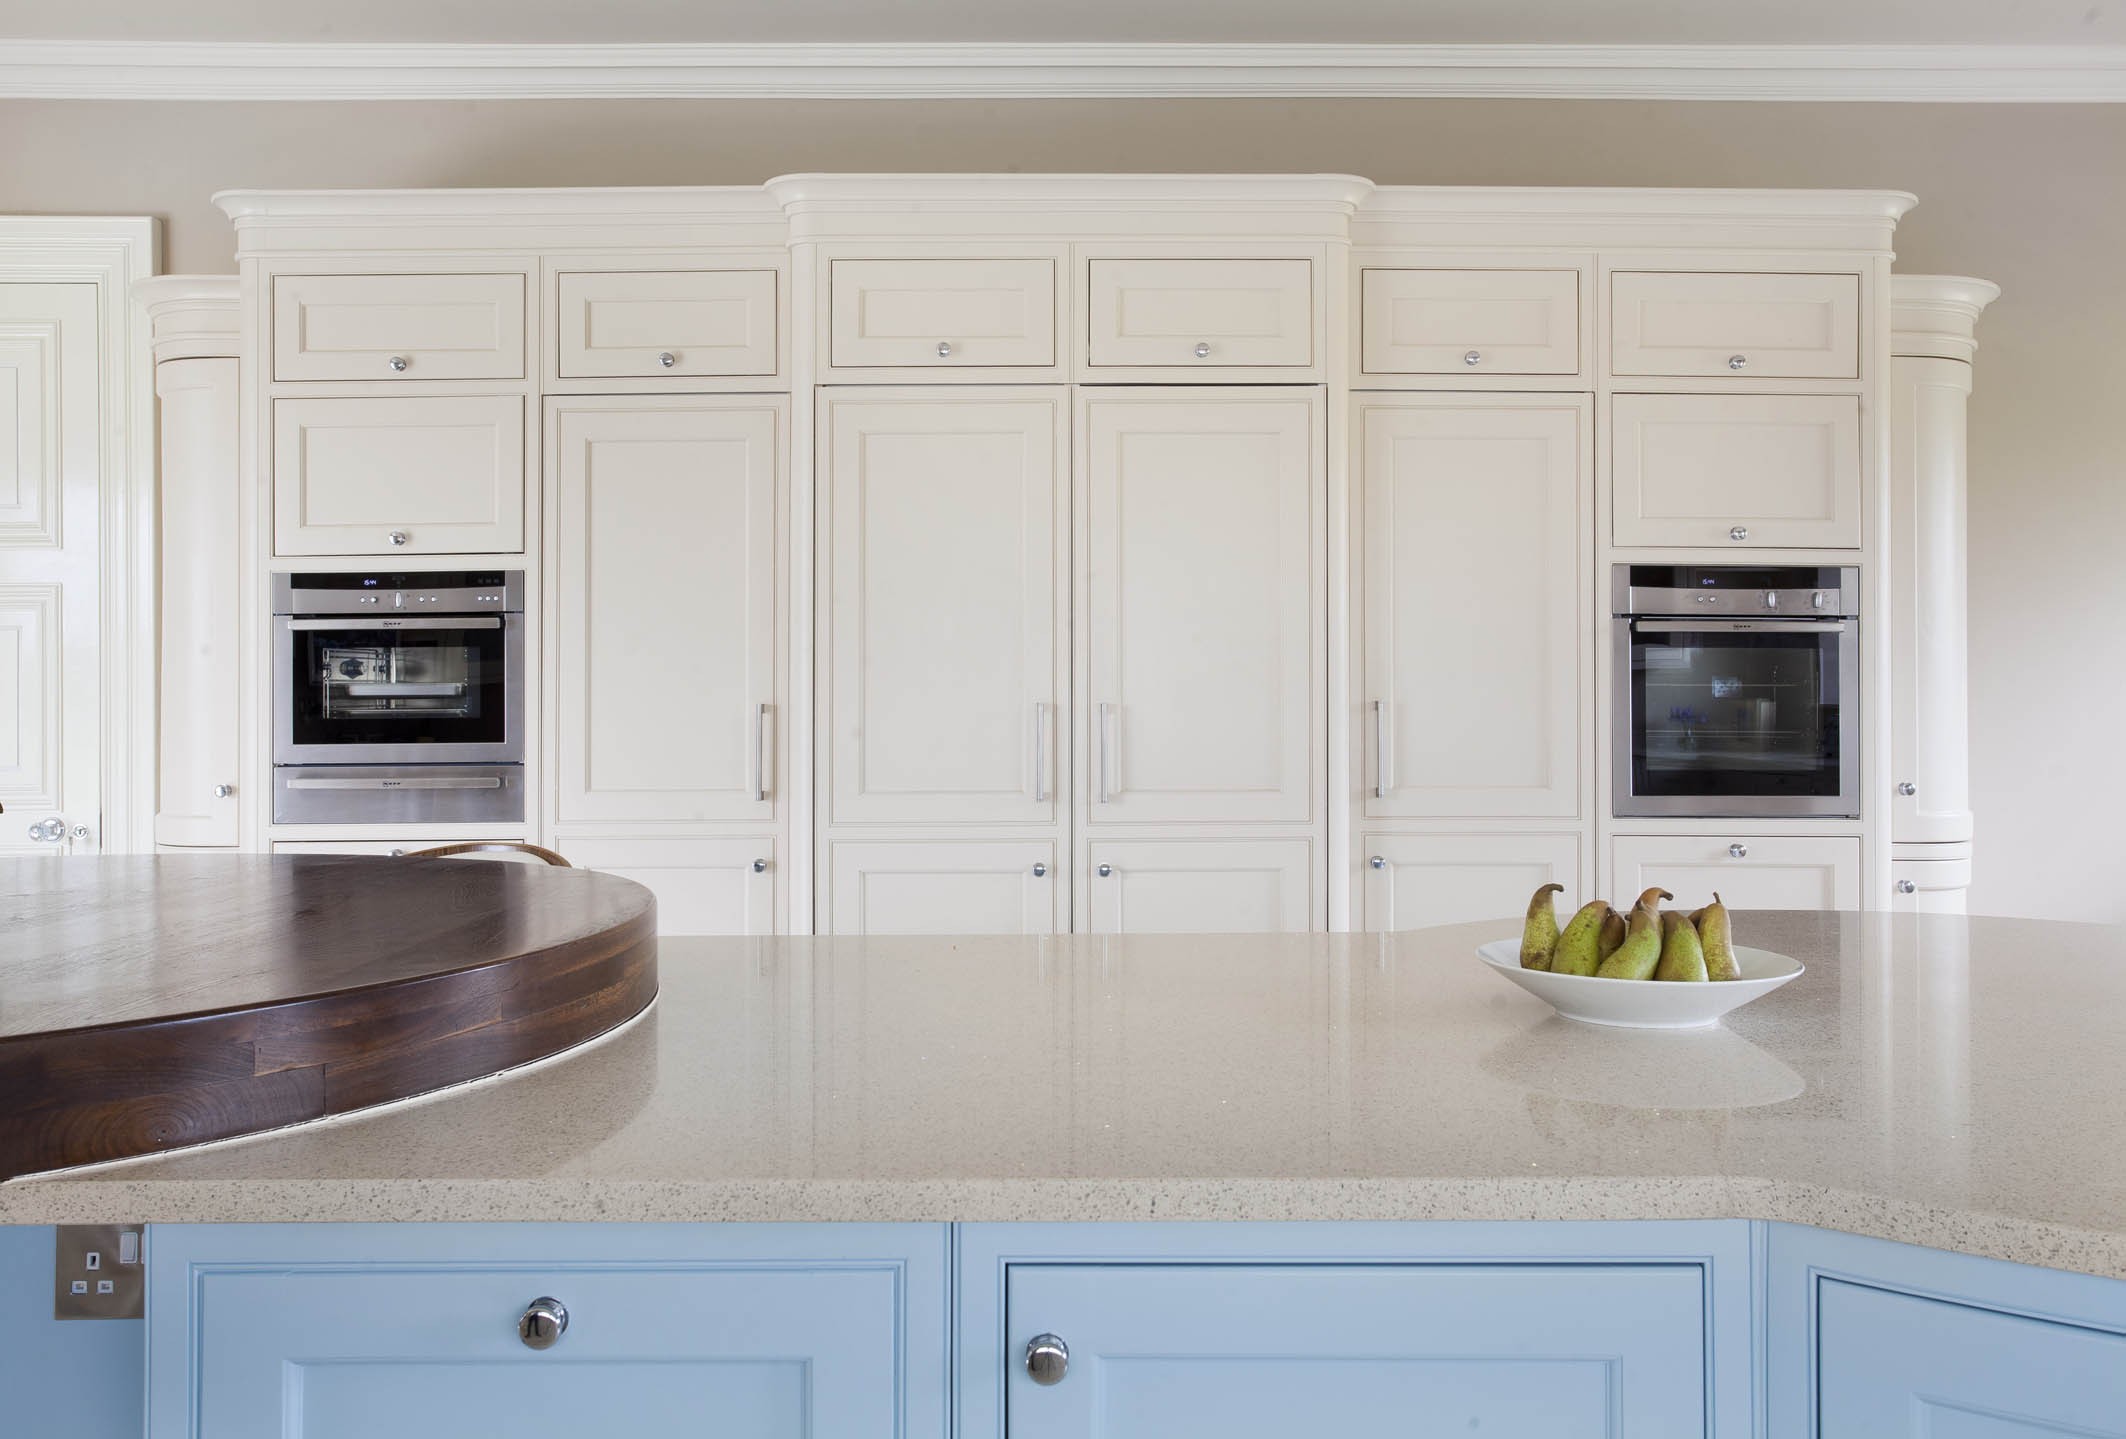 Bespoke Maple In Frame Kitchen Handpainted Farrow Ball Archive With Island